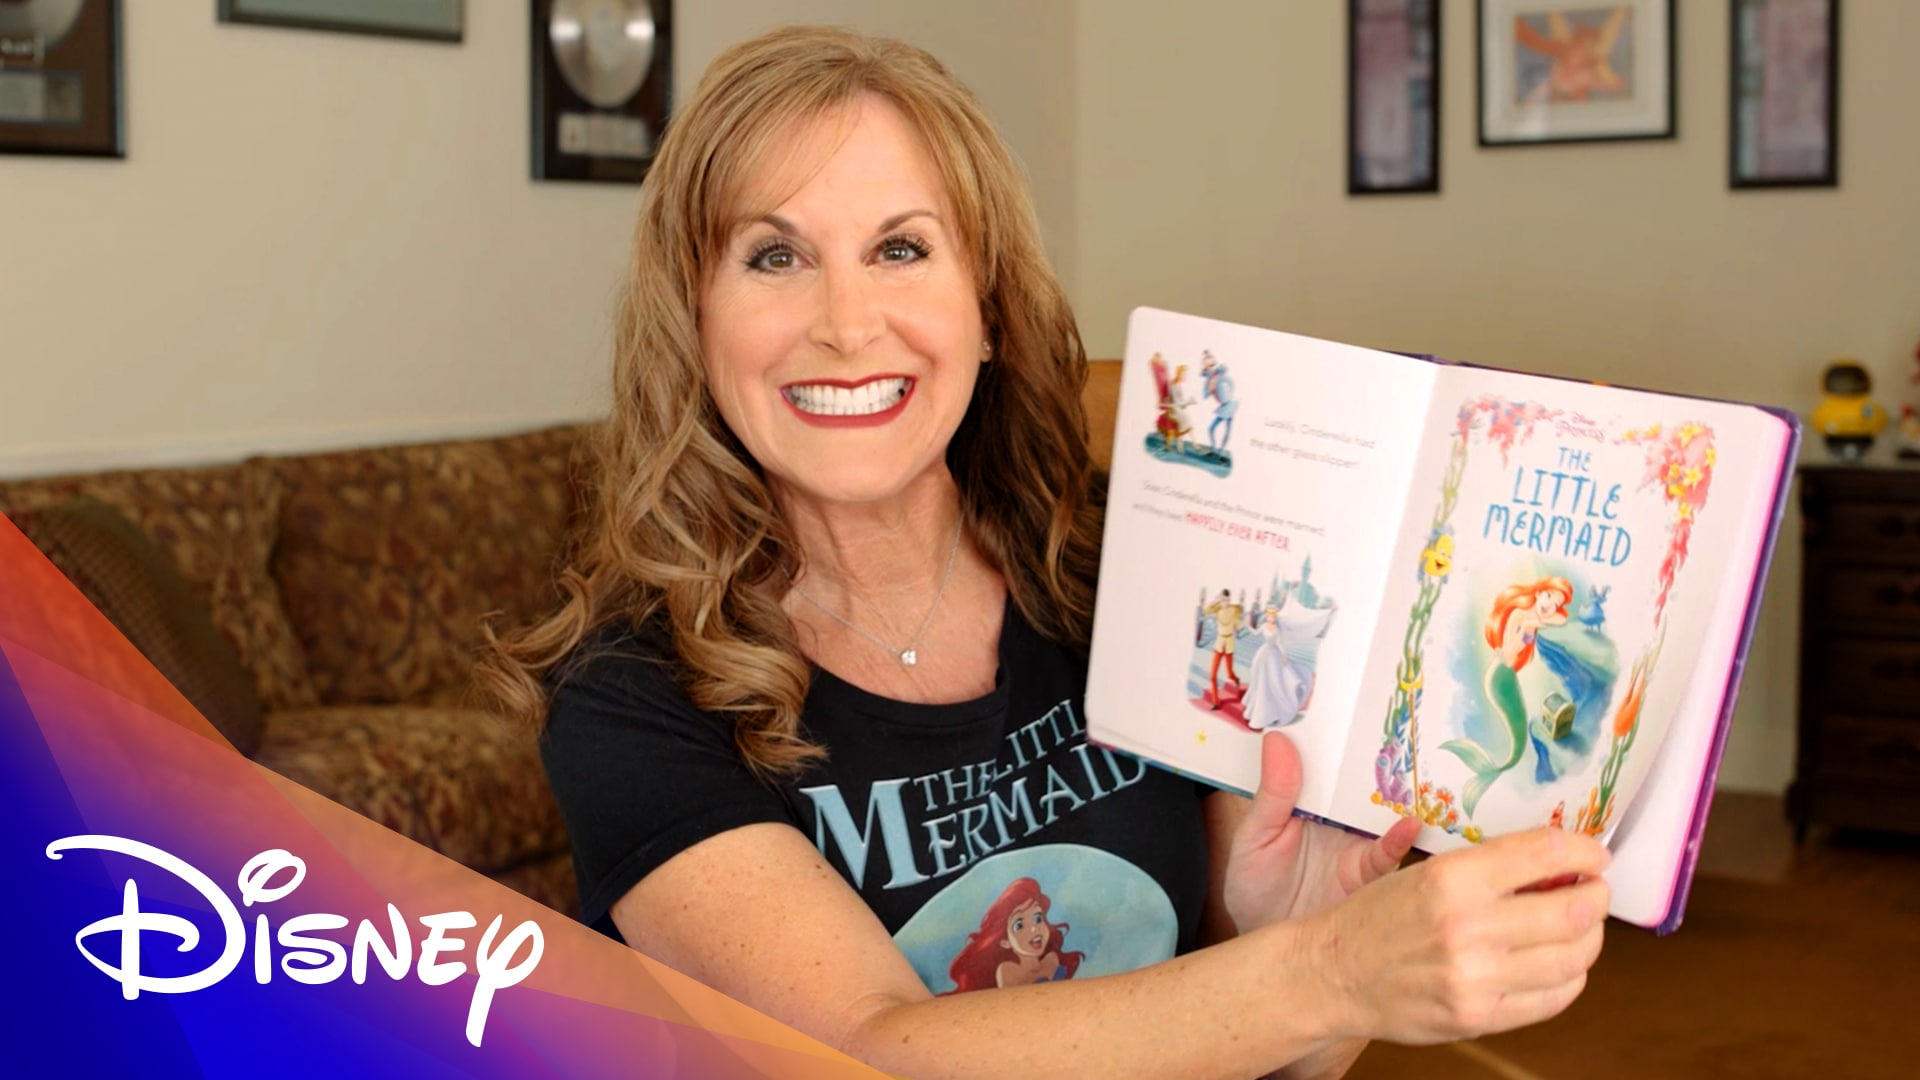 Storytime with Jodi Benson | Disney